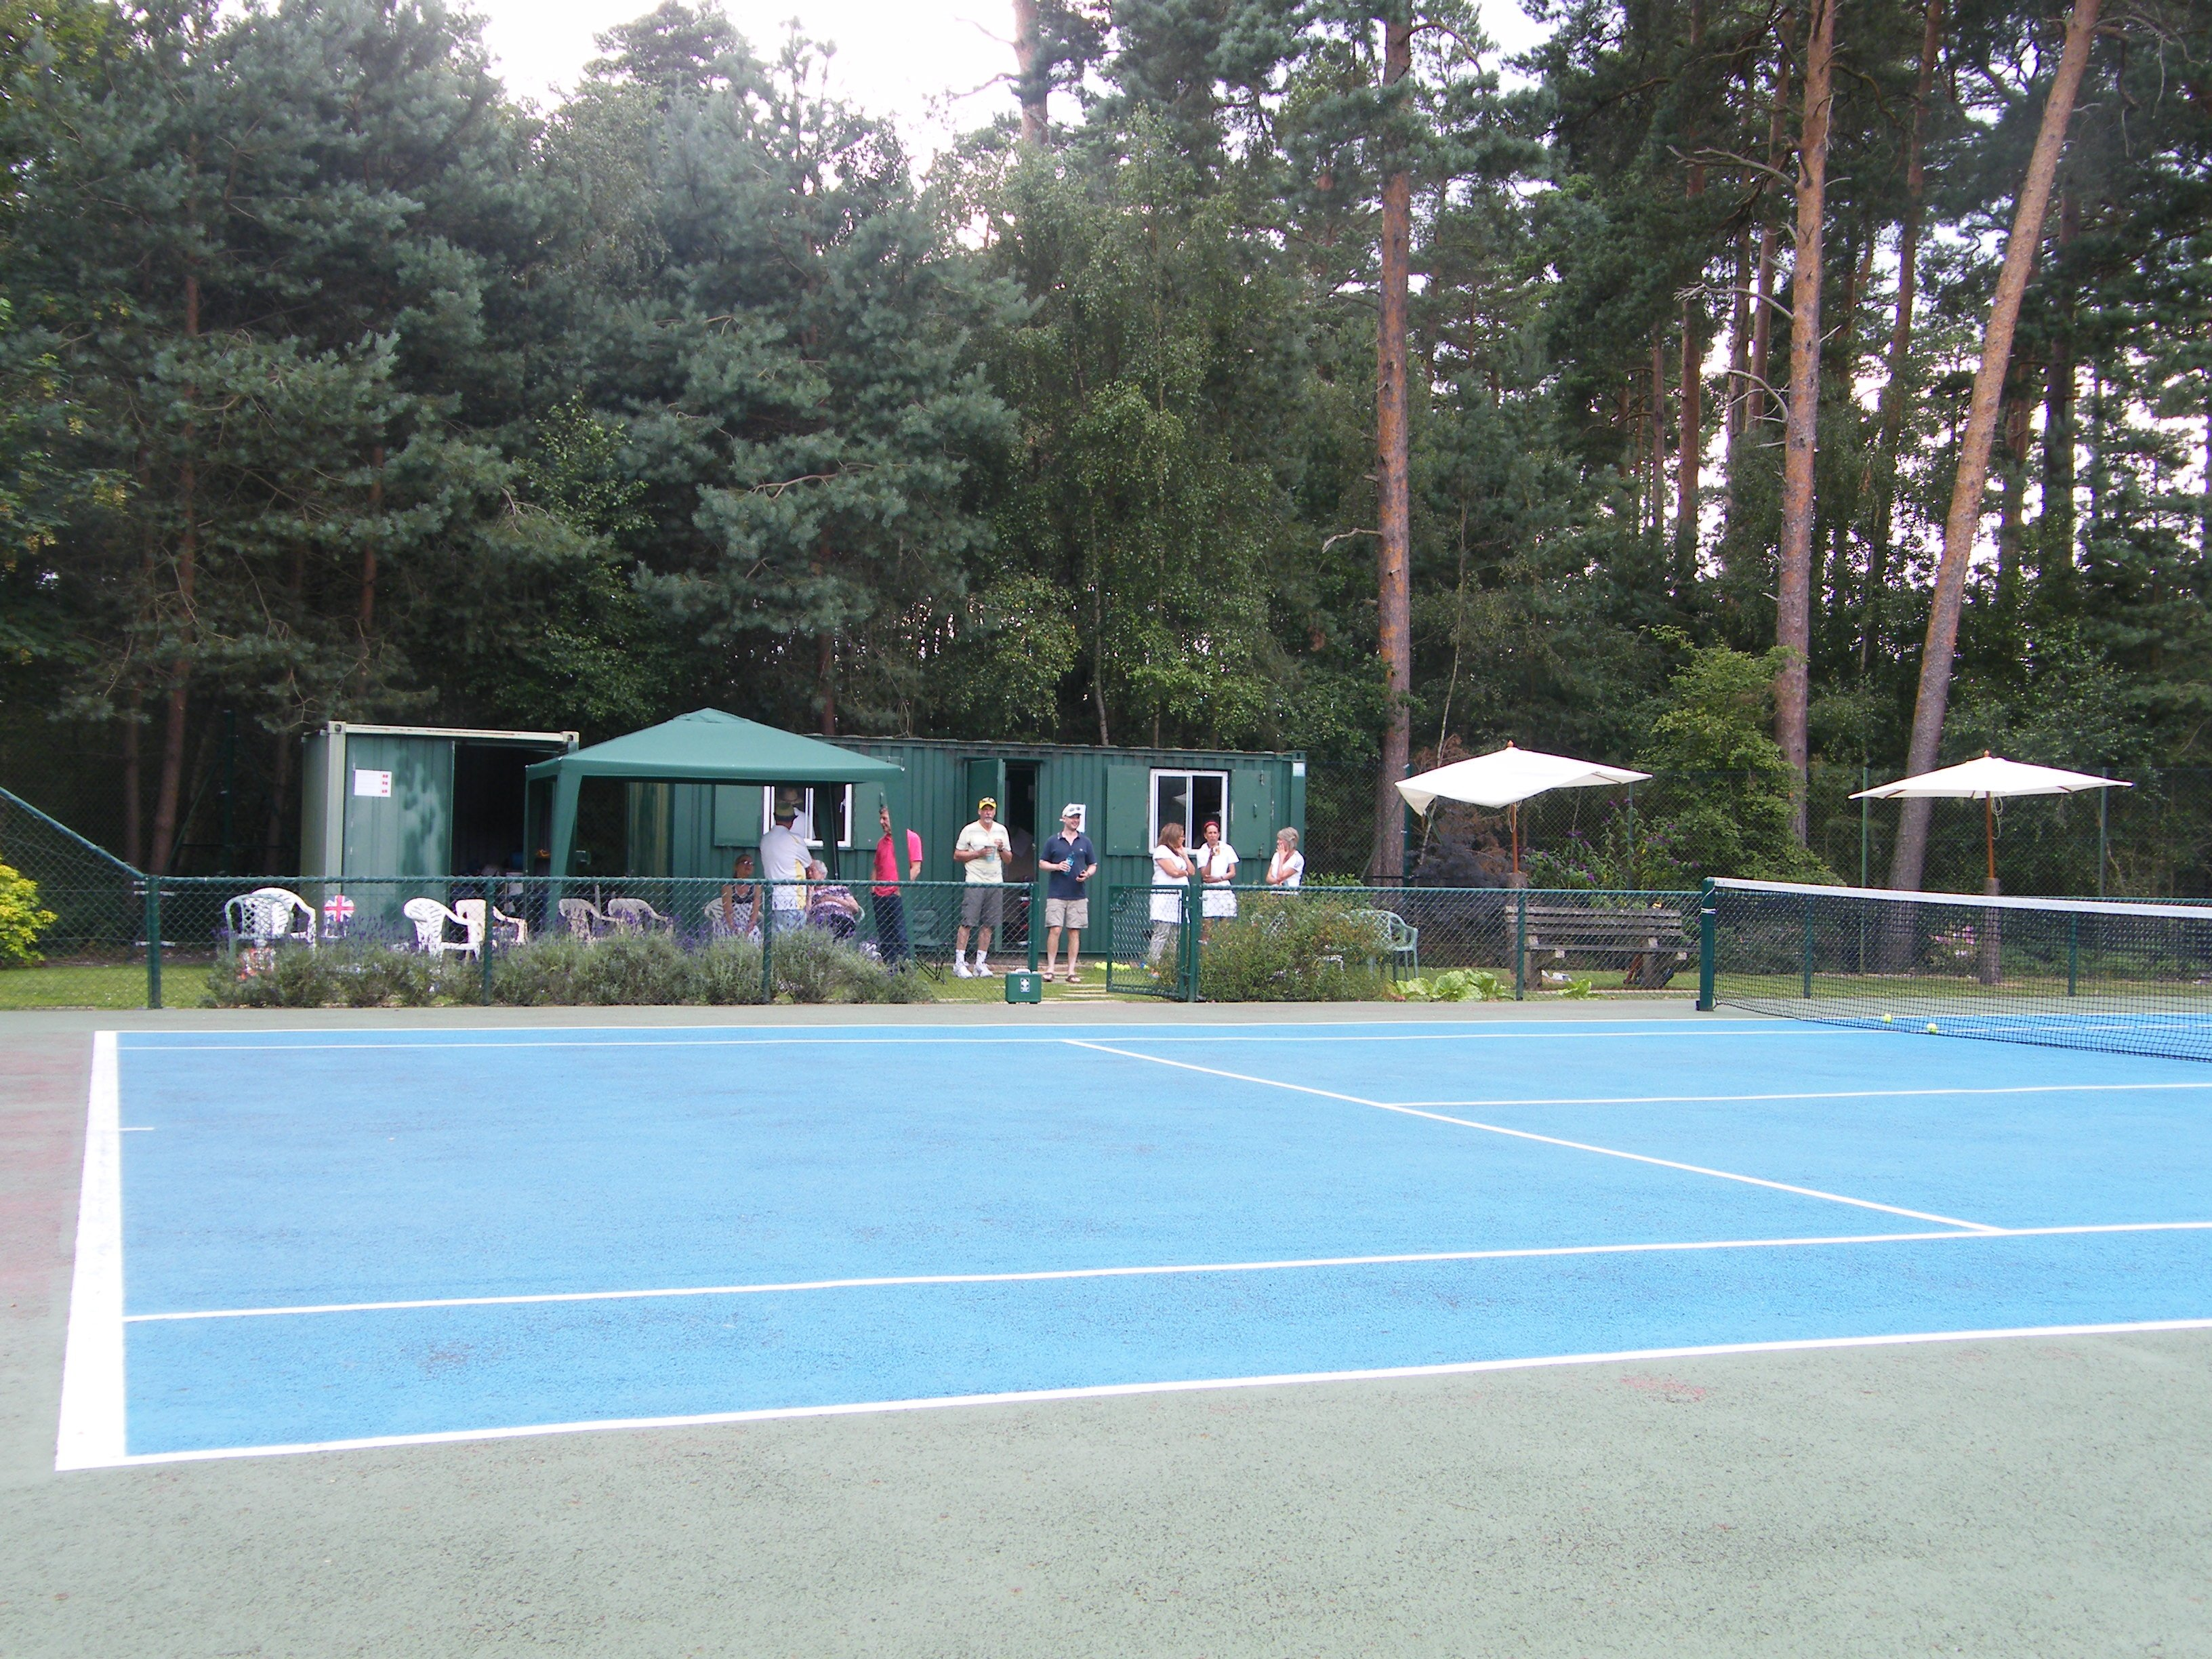 The members setting up a Crowthorne Tennis Club Open Day